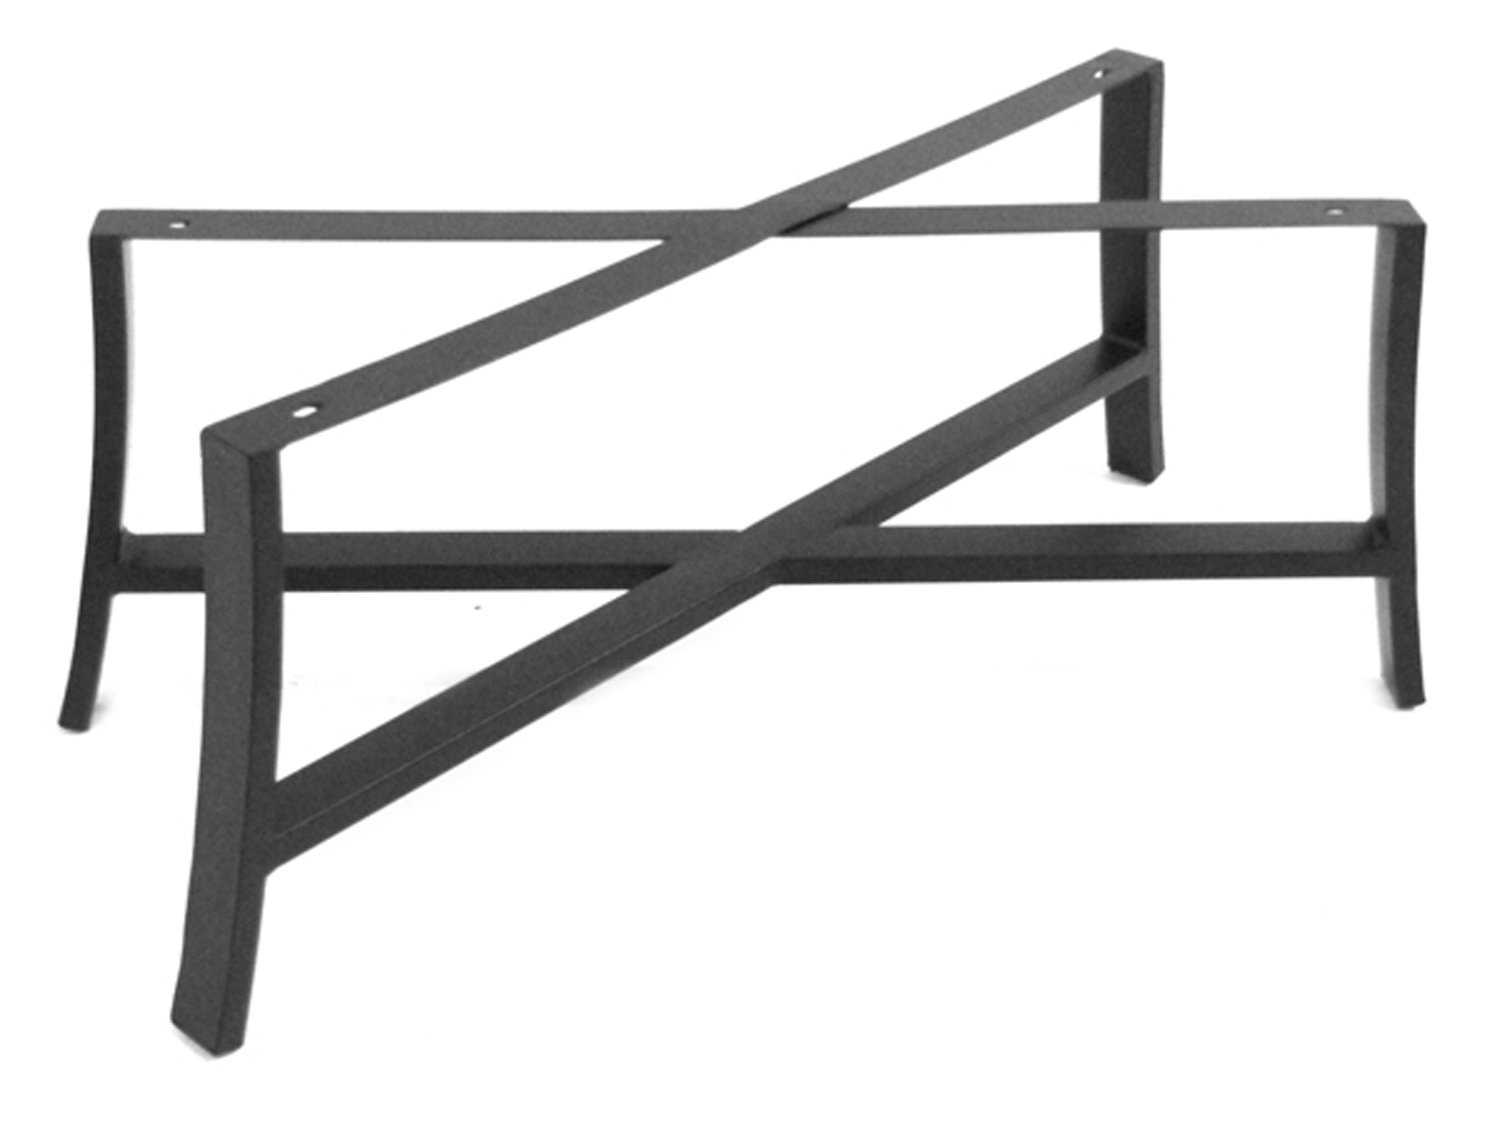 Meadowcraft maddux wrought iron coffee table base 4413370 01 Wrought iron coffee table bases